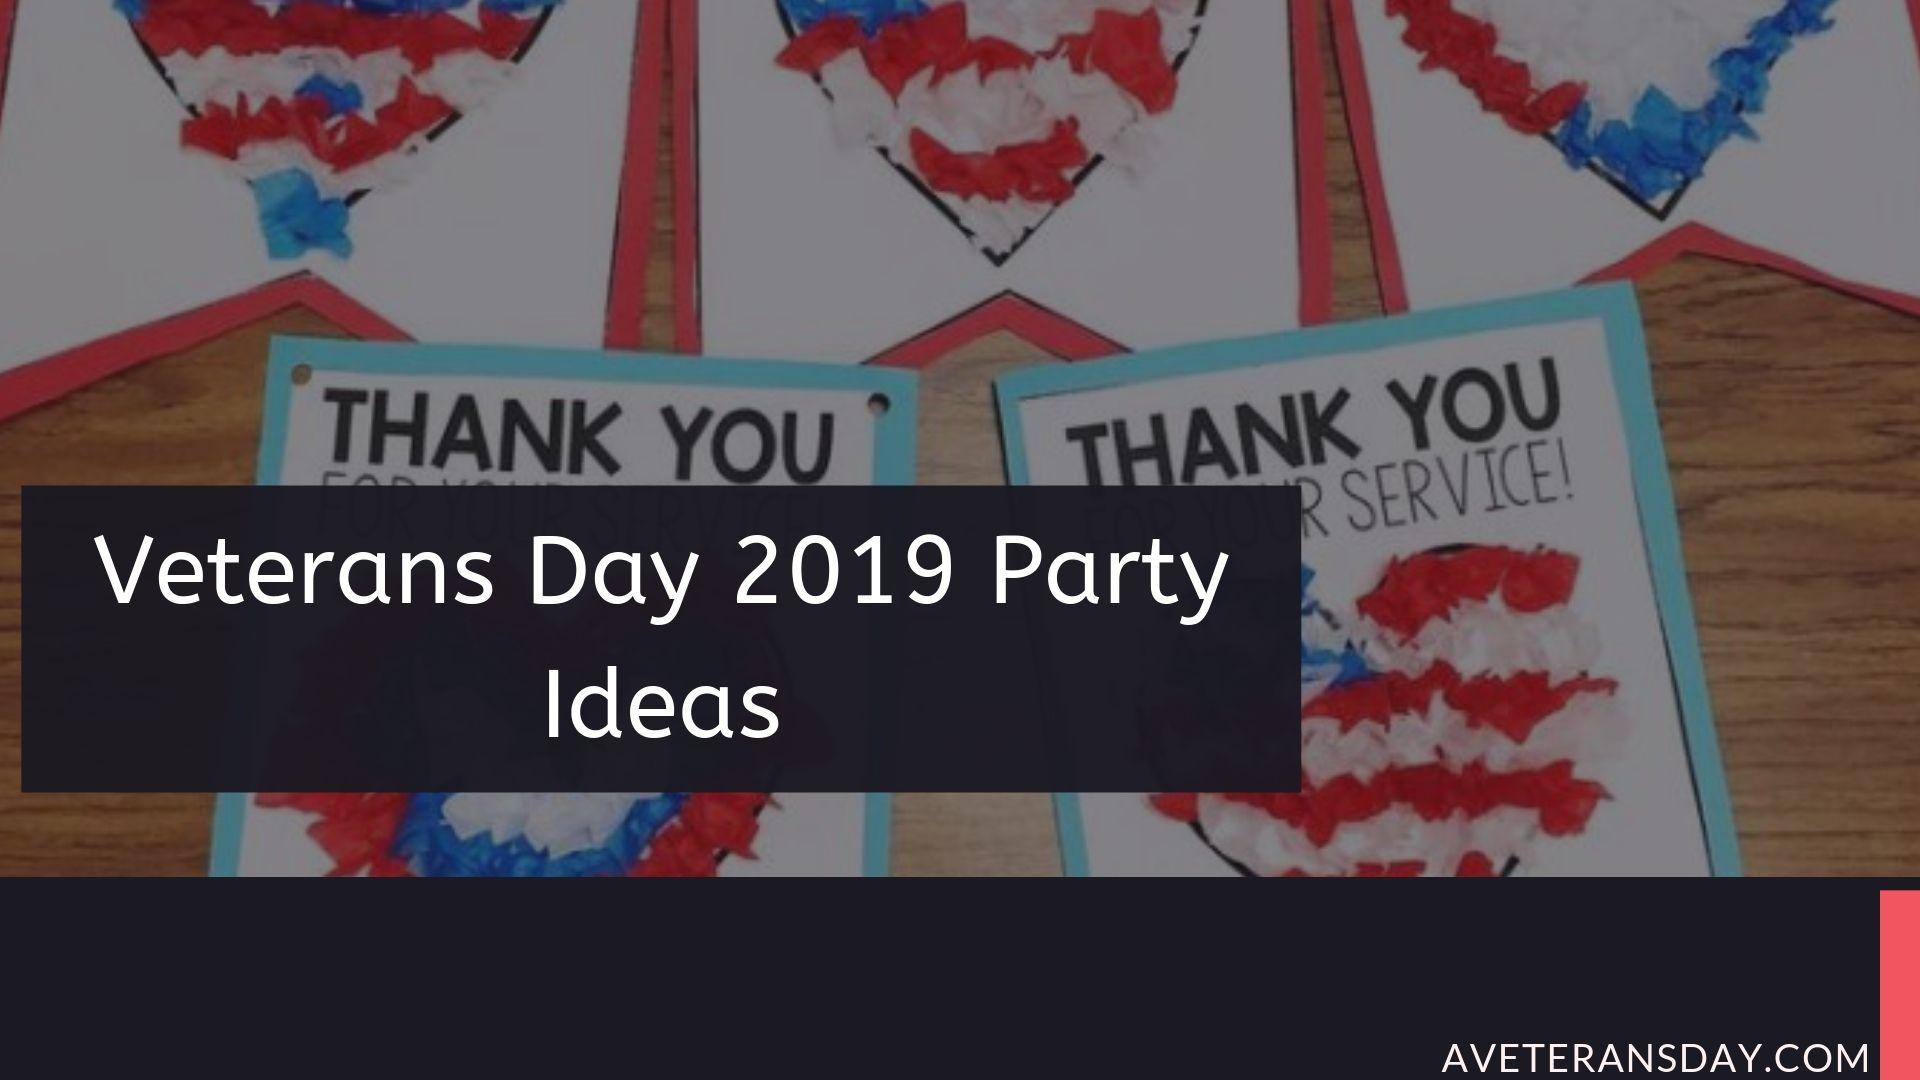 Happy Veterans Day 2019 Party Ideas